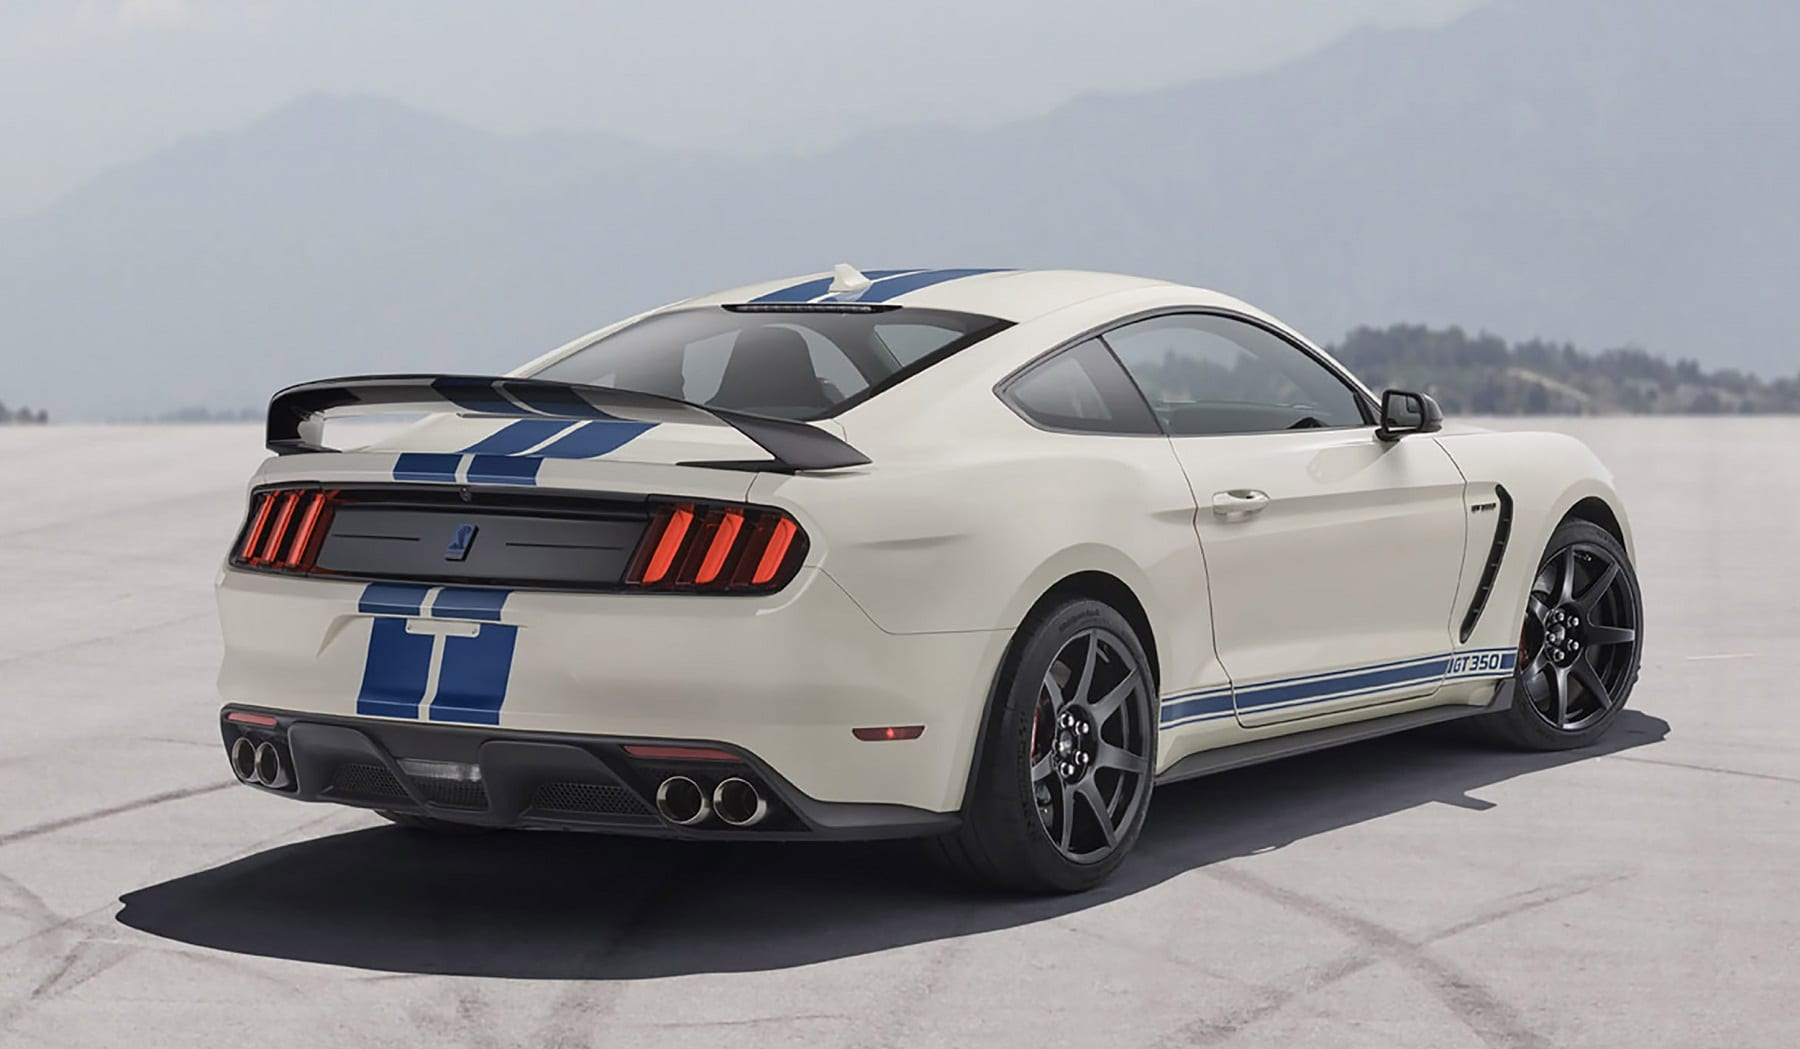 GT350 Heritage Edition Package